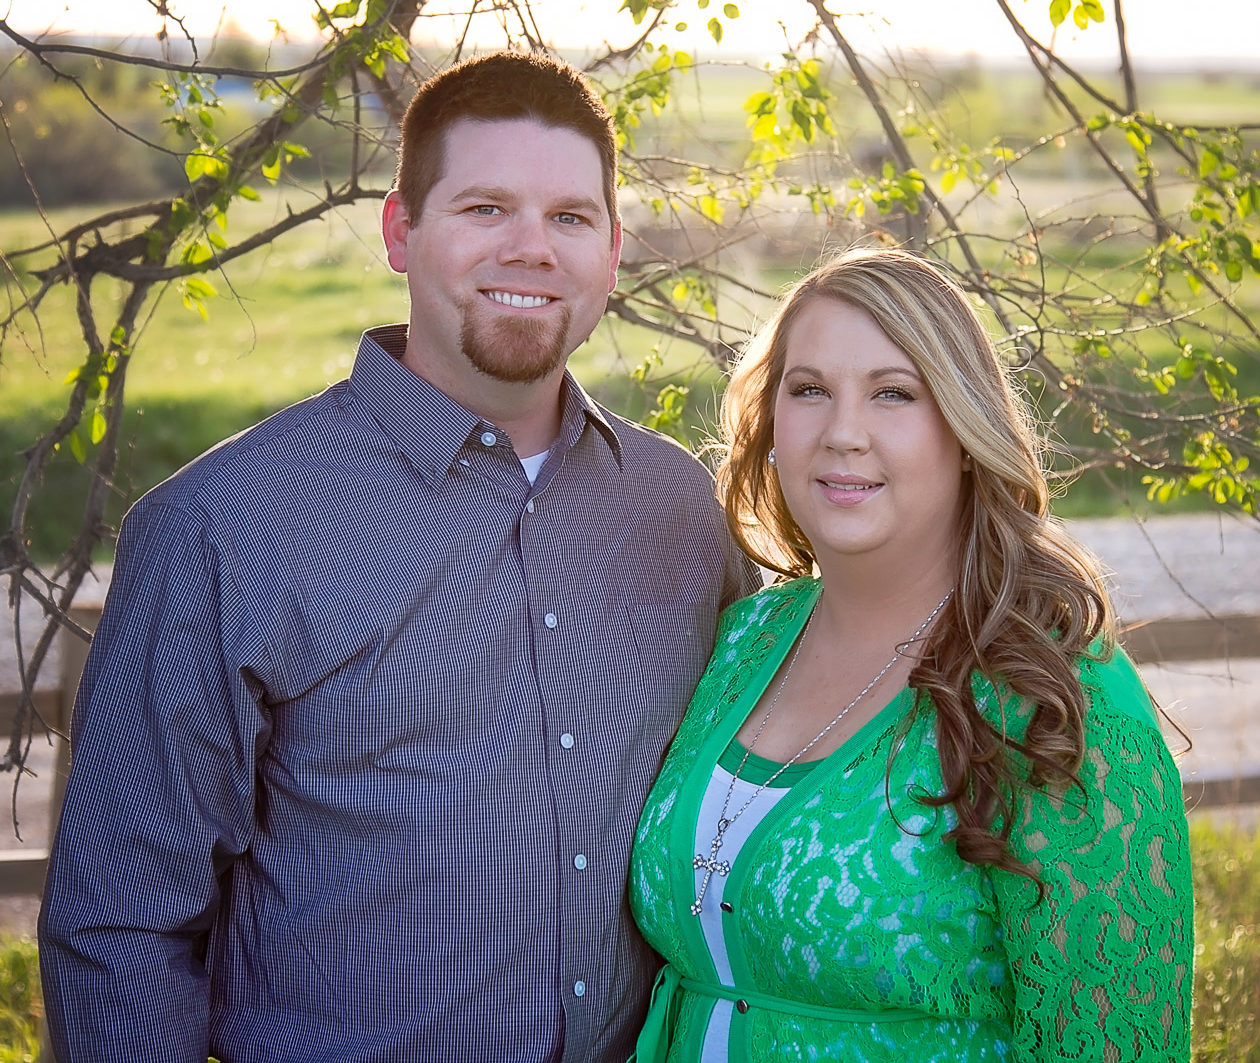 Lifetime Adoptive Parents Jared and Deidra